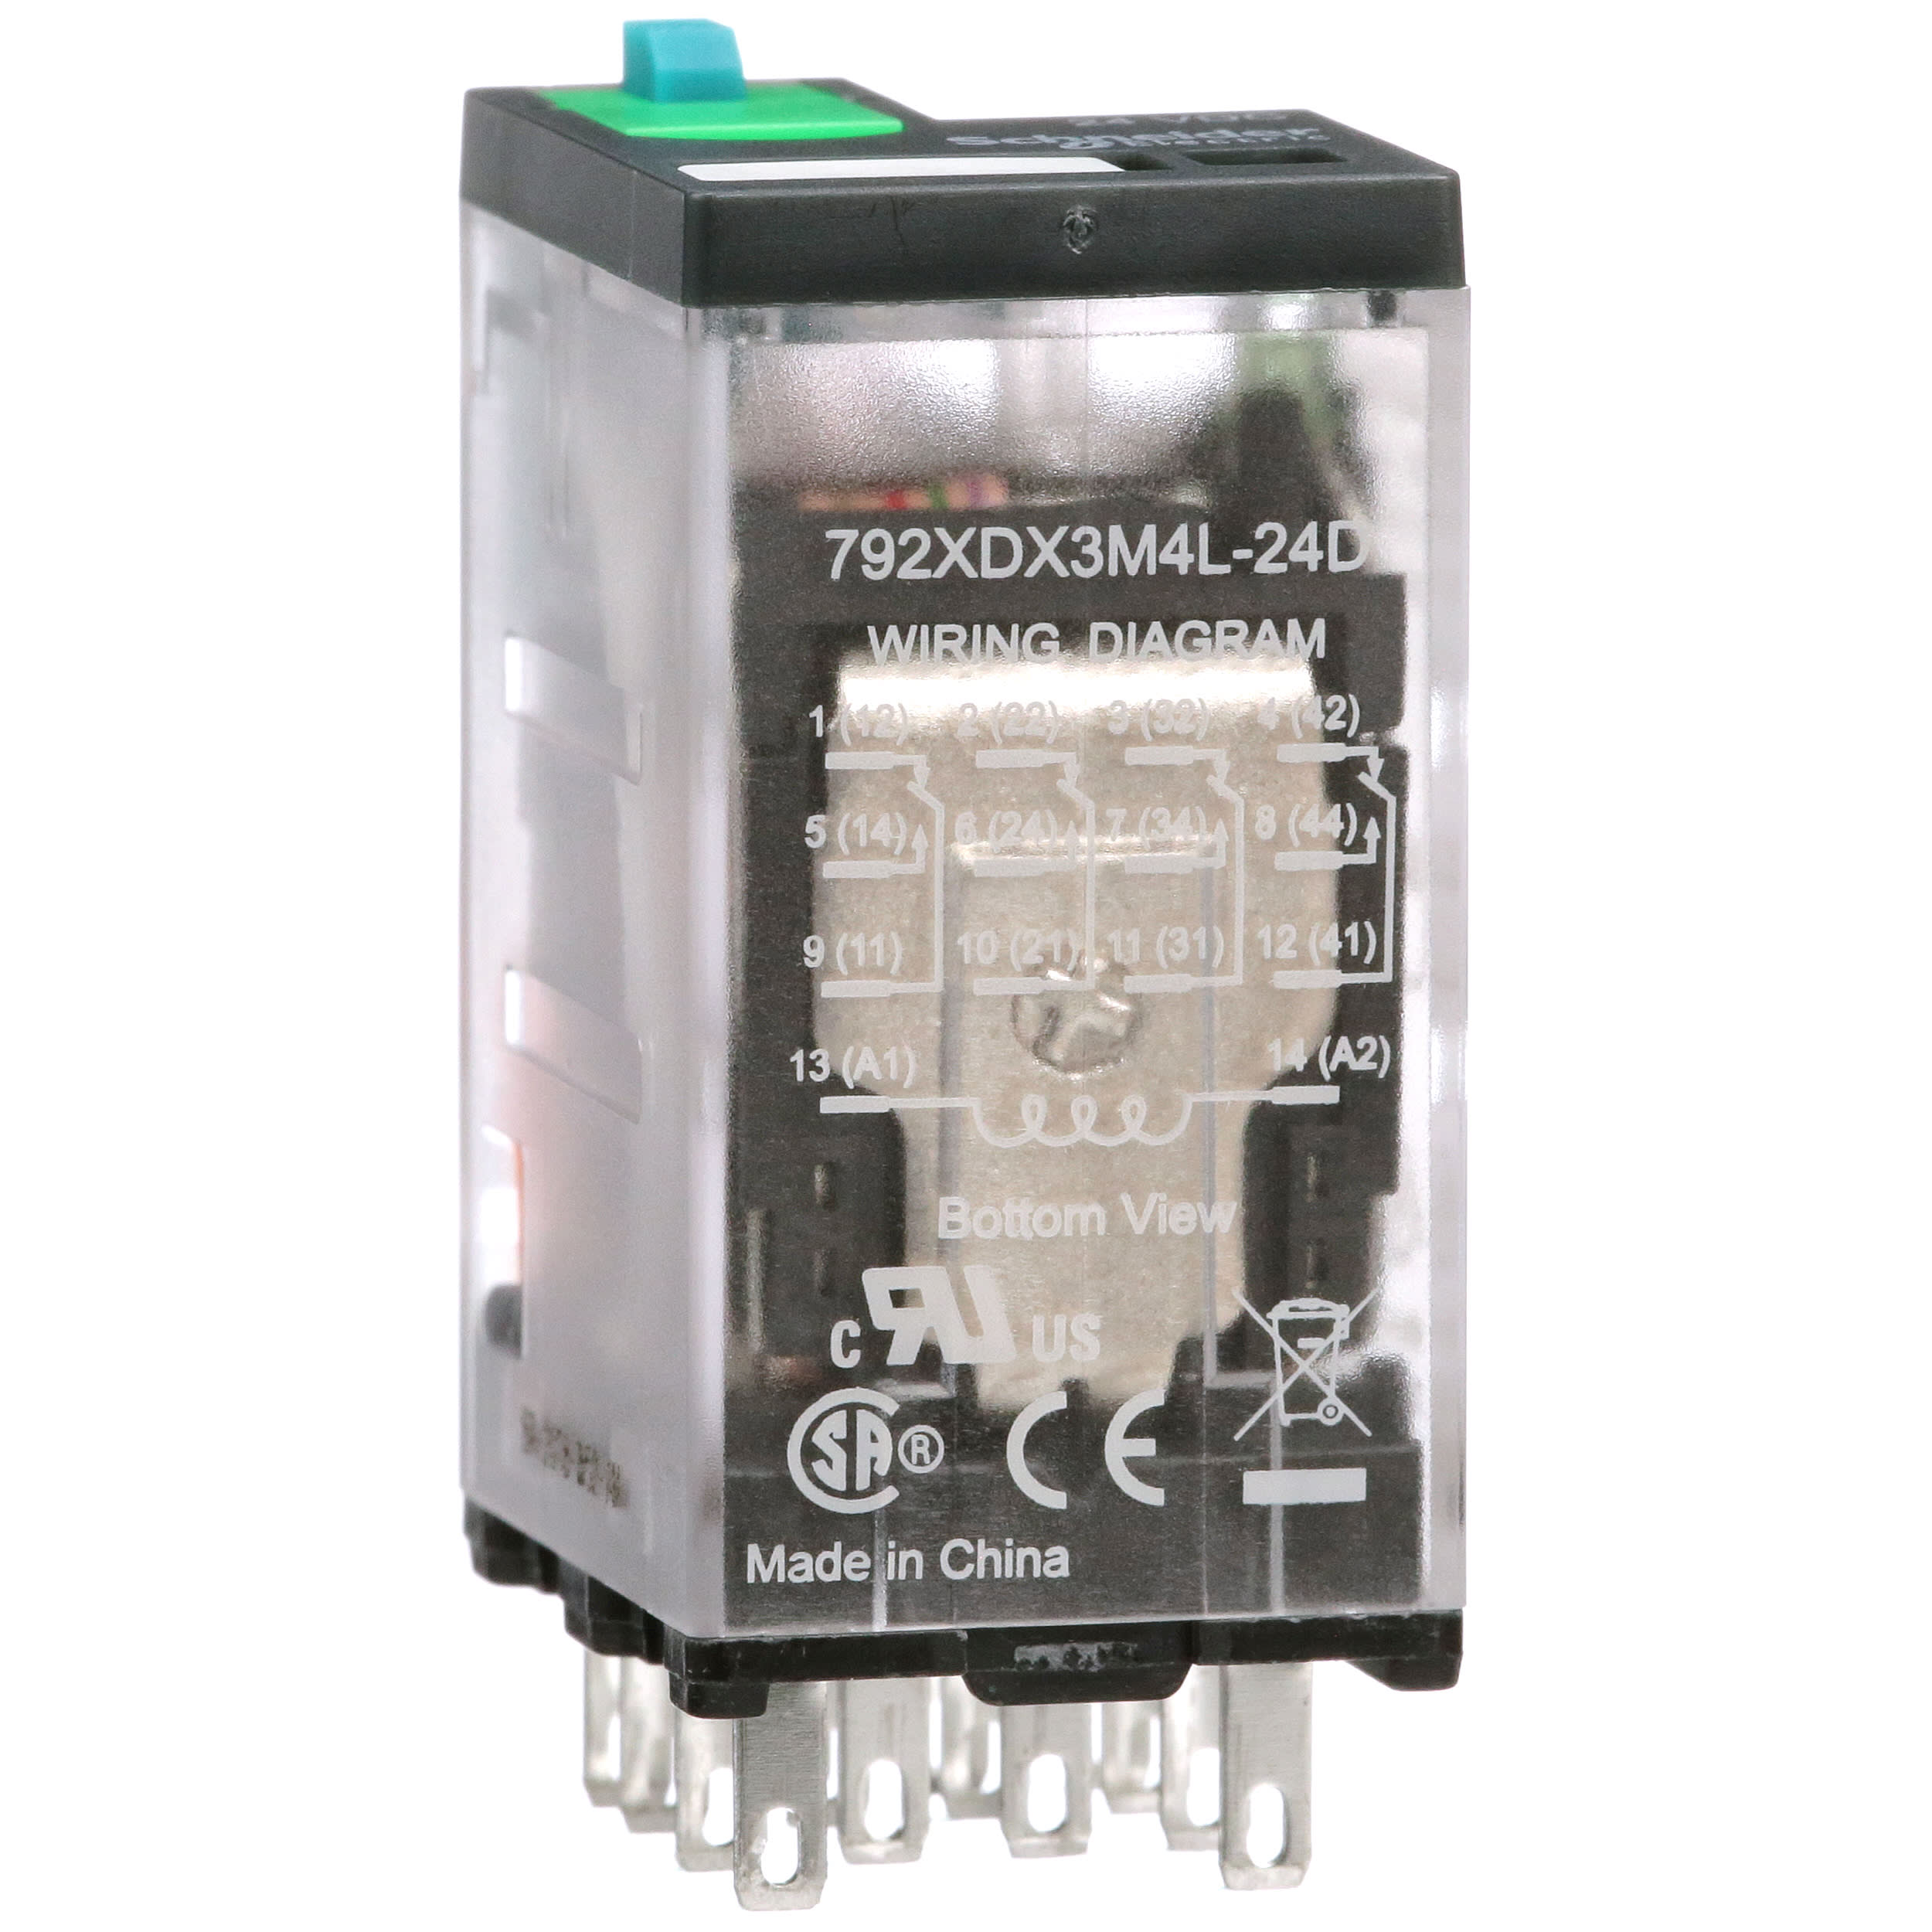 Schneider Electric Legacy Relays 792xdx3m4l 24d Ice Cube Relay 3a 4dpt 24vdc Plug In 300v Full Featured Cover 792 Control Allied Electronics Automation